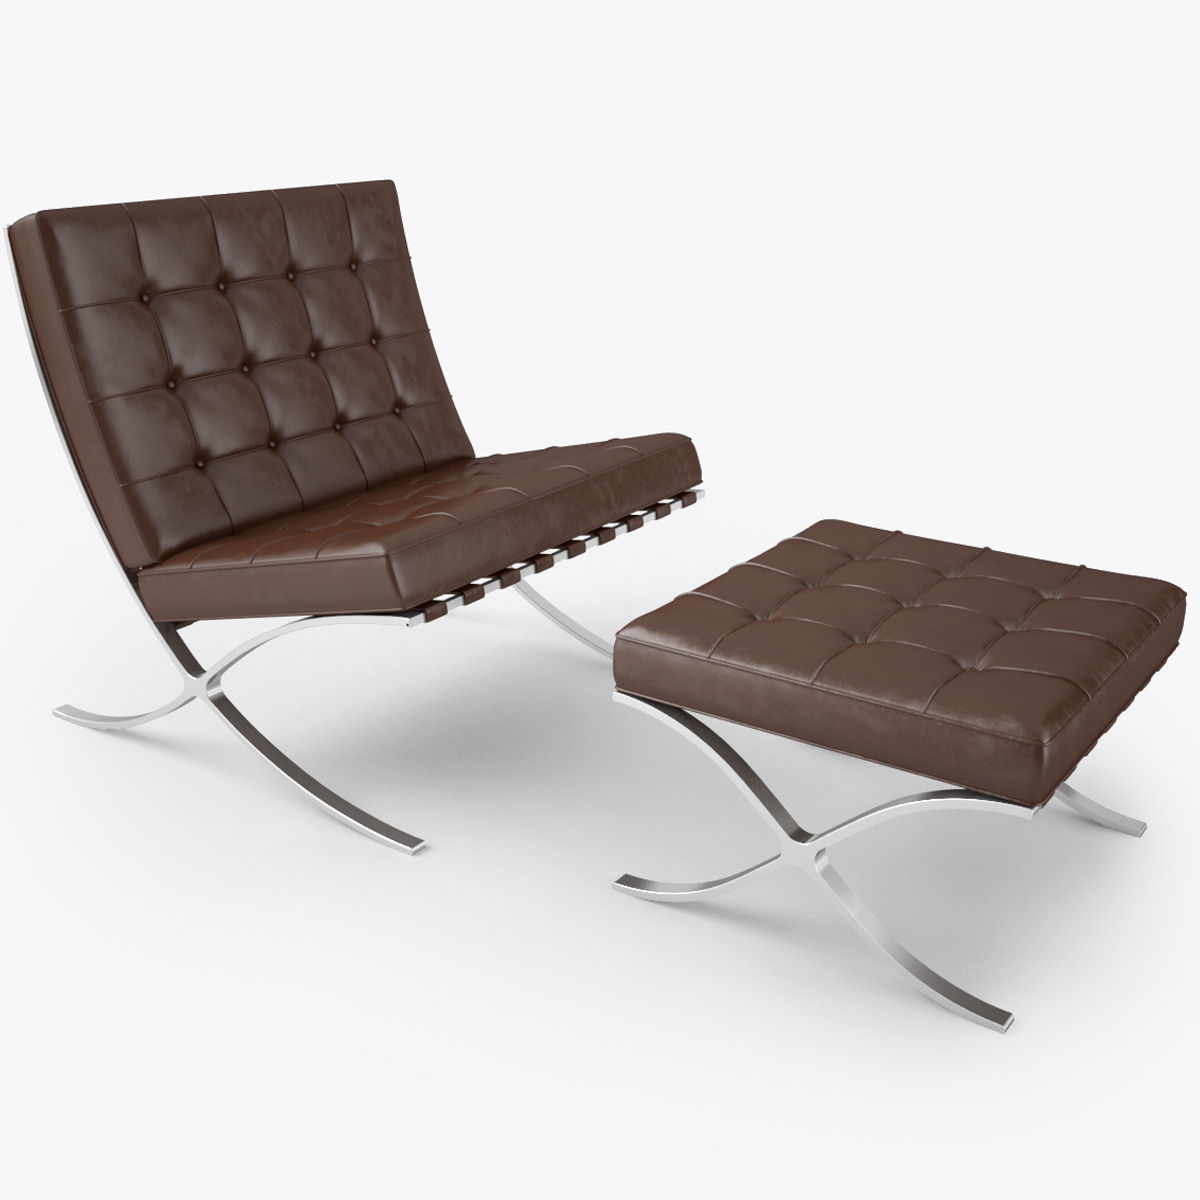 ... Knoll Barcelona Chair 3d Model Max Obj Fbx Mtl 2 ...